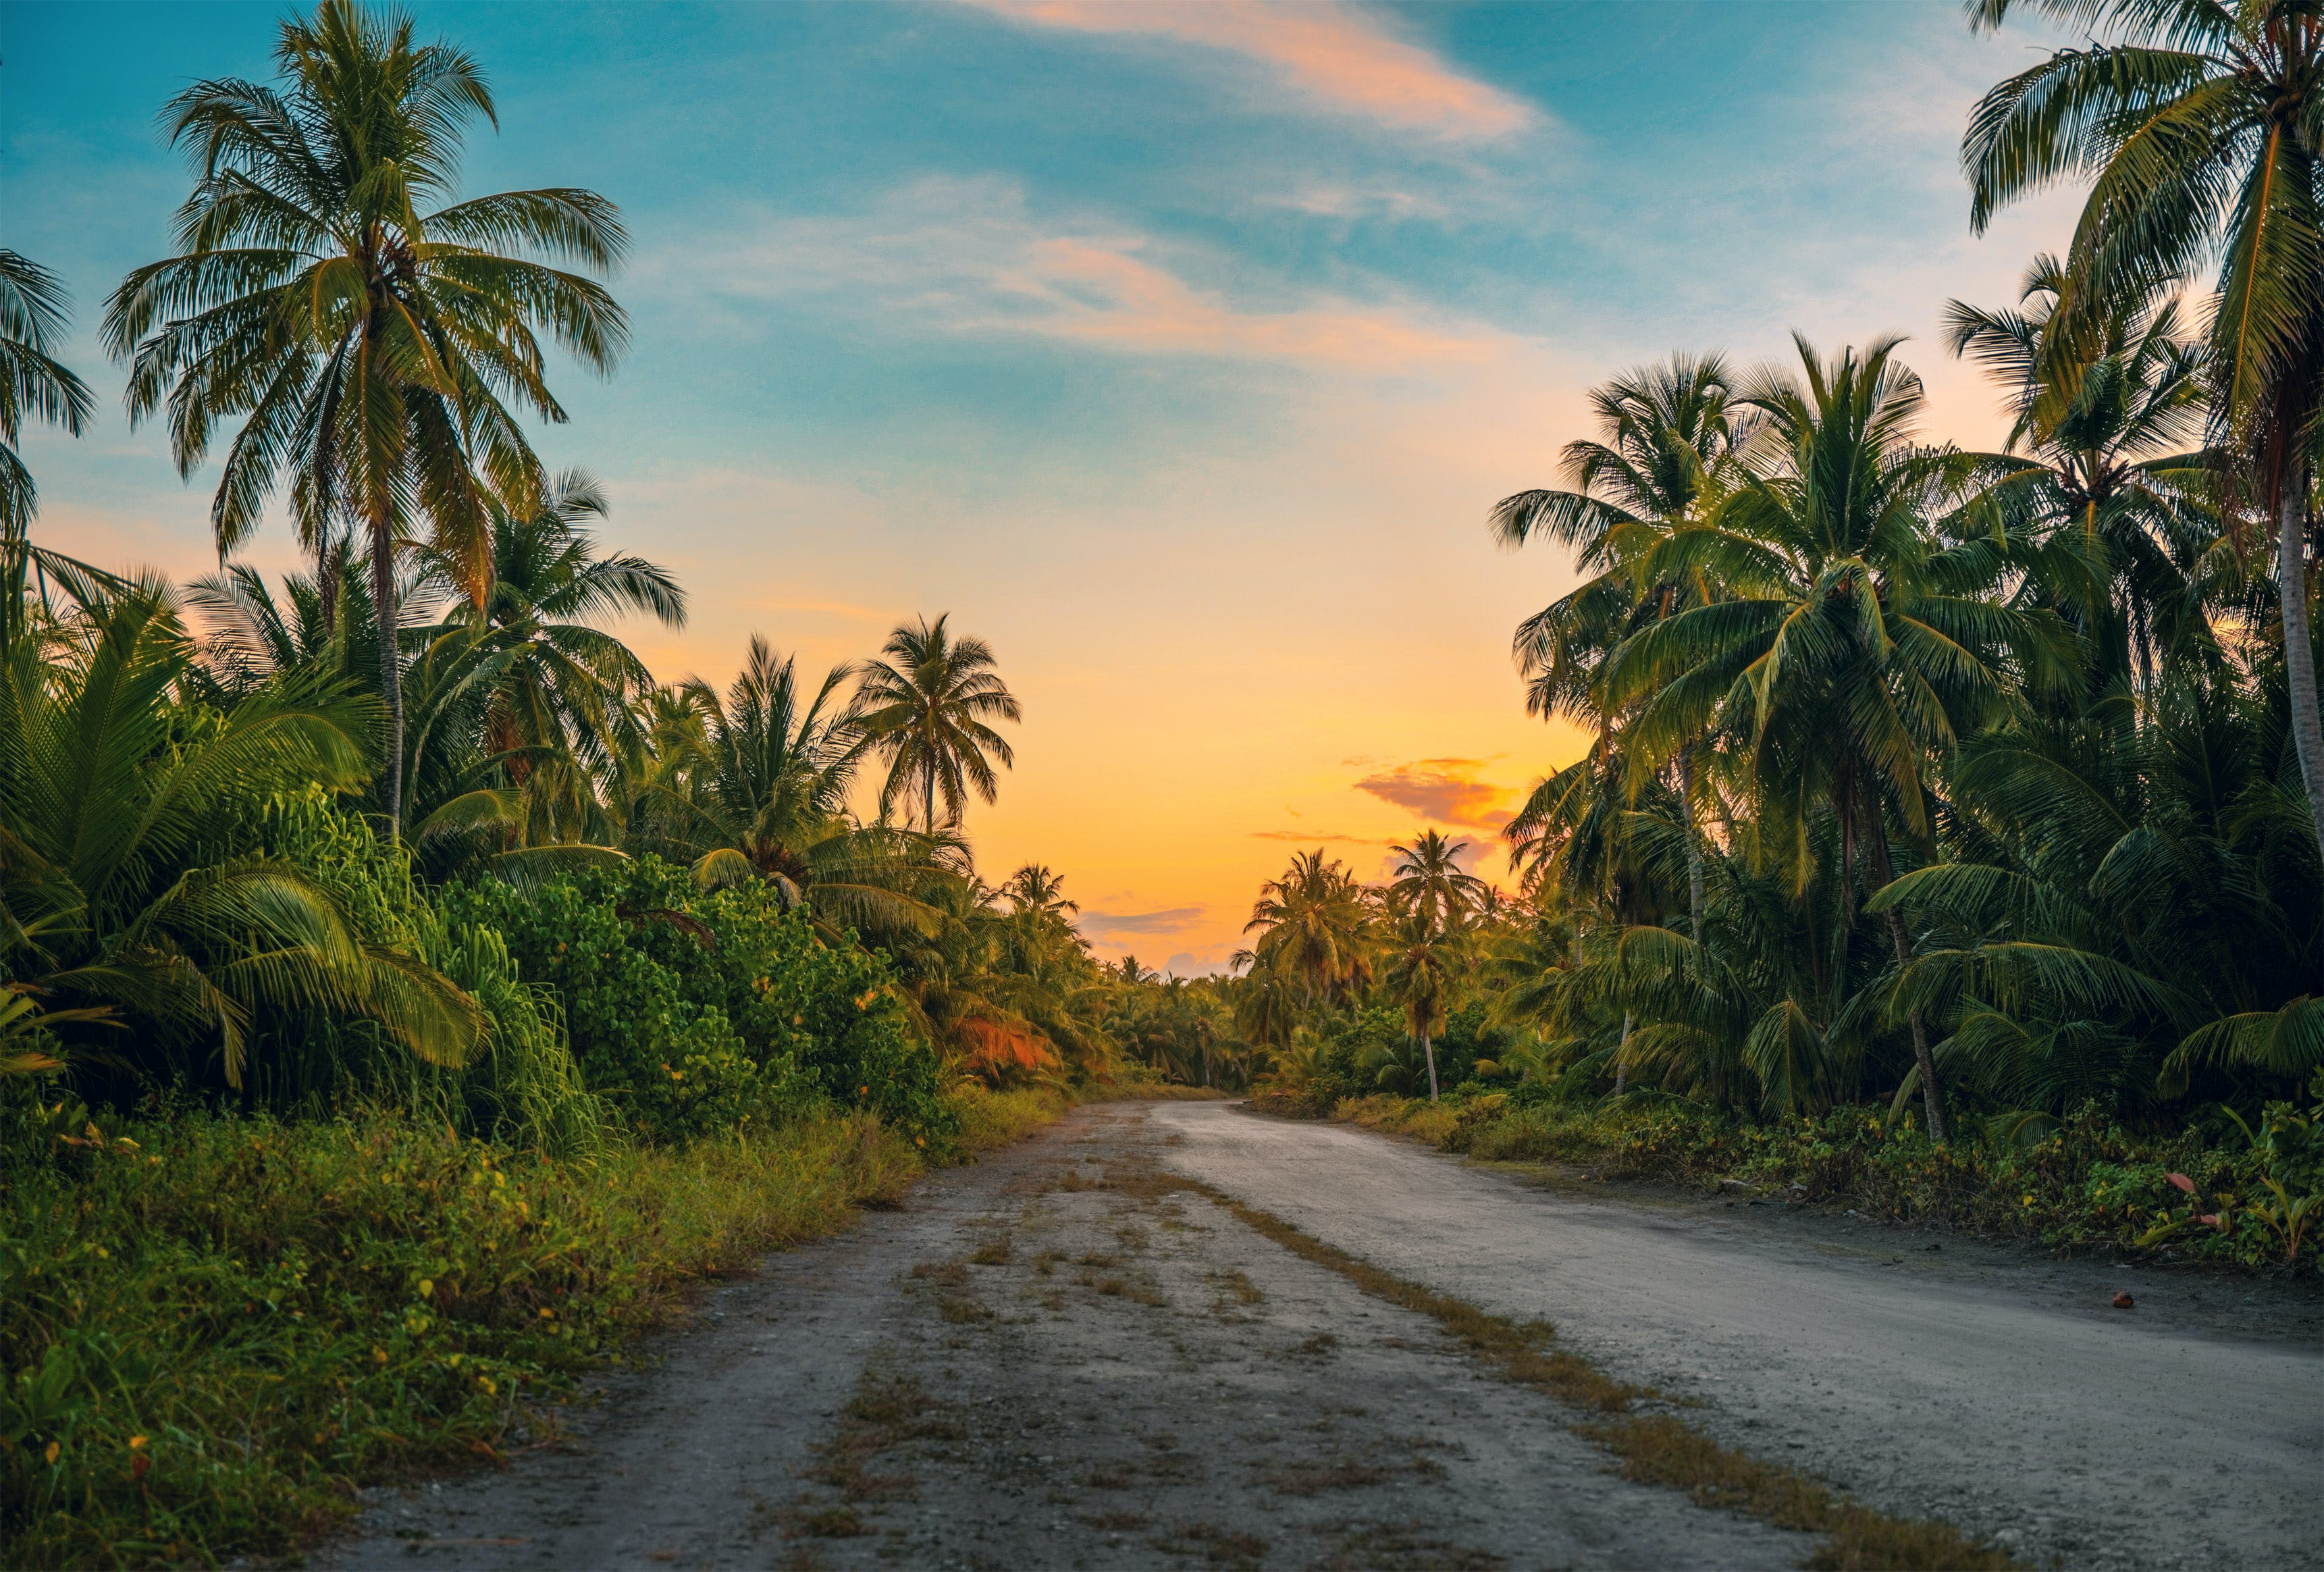 Photography of Dirt Road Surrounded by Trees